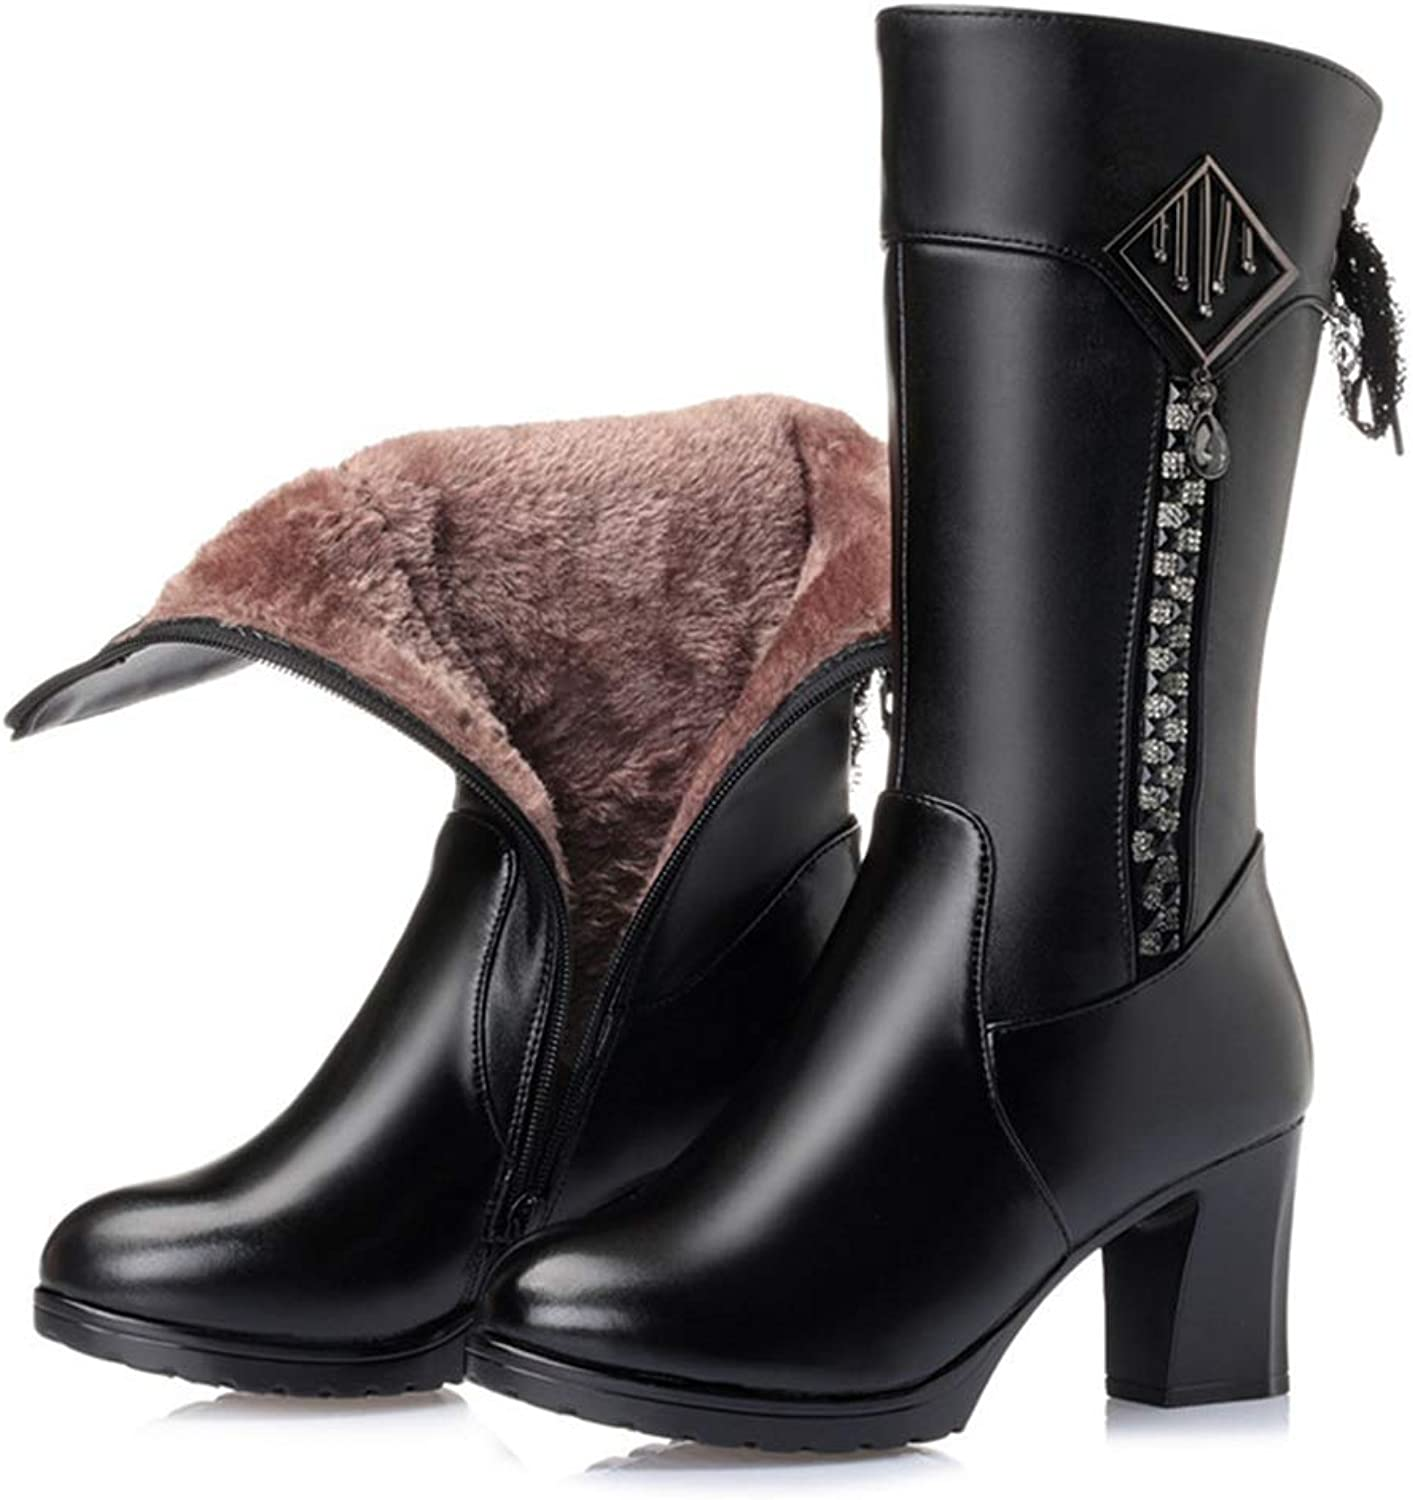 AVENBER Women Mid Calf Boots High Heel Thick Winter Warm Side Zipper Footwears Adult Rubber Lace Bow Decoration shoes